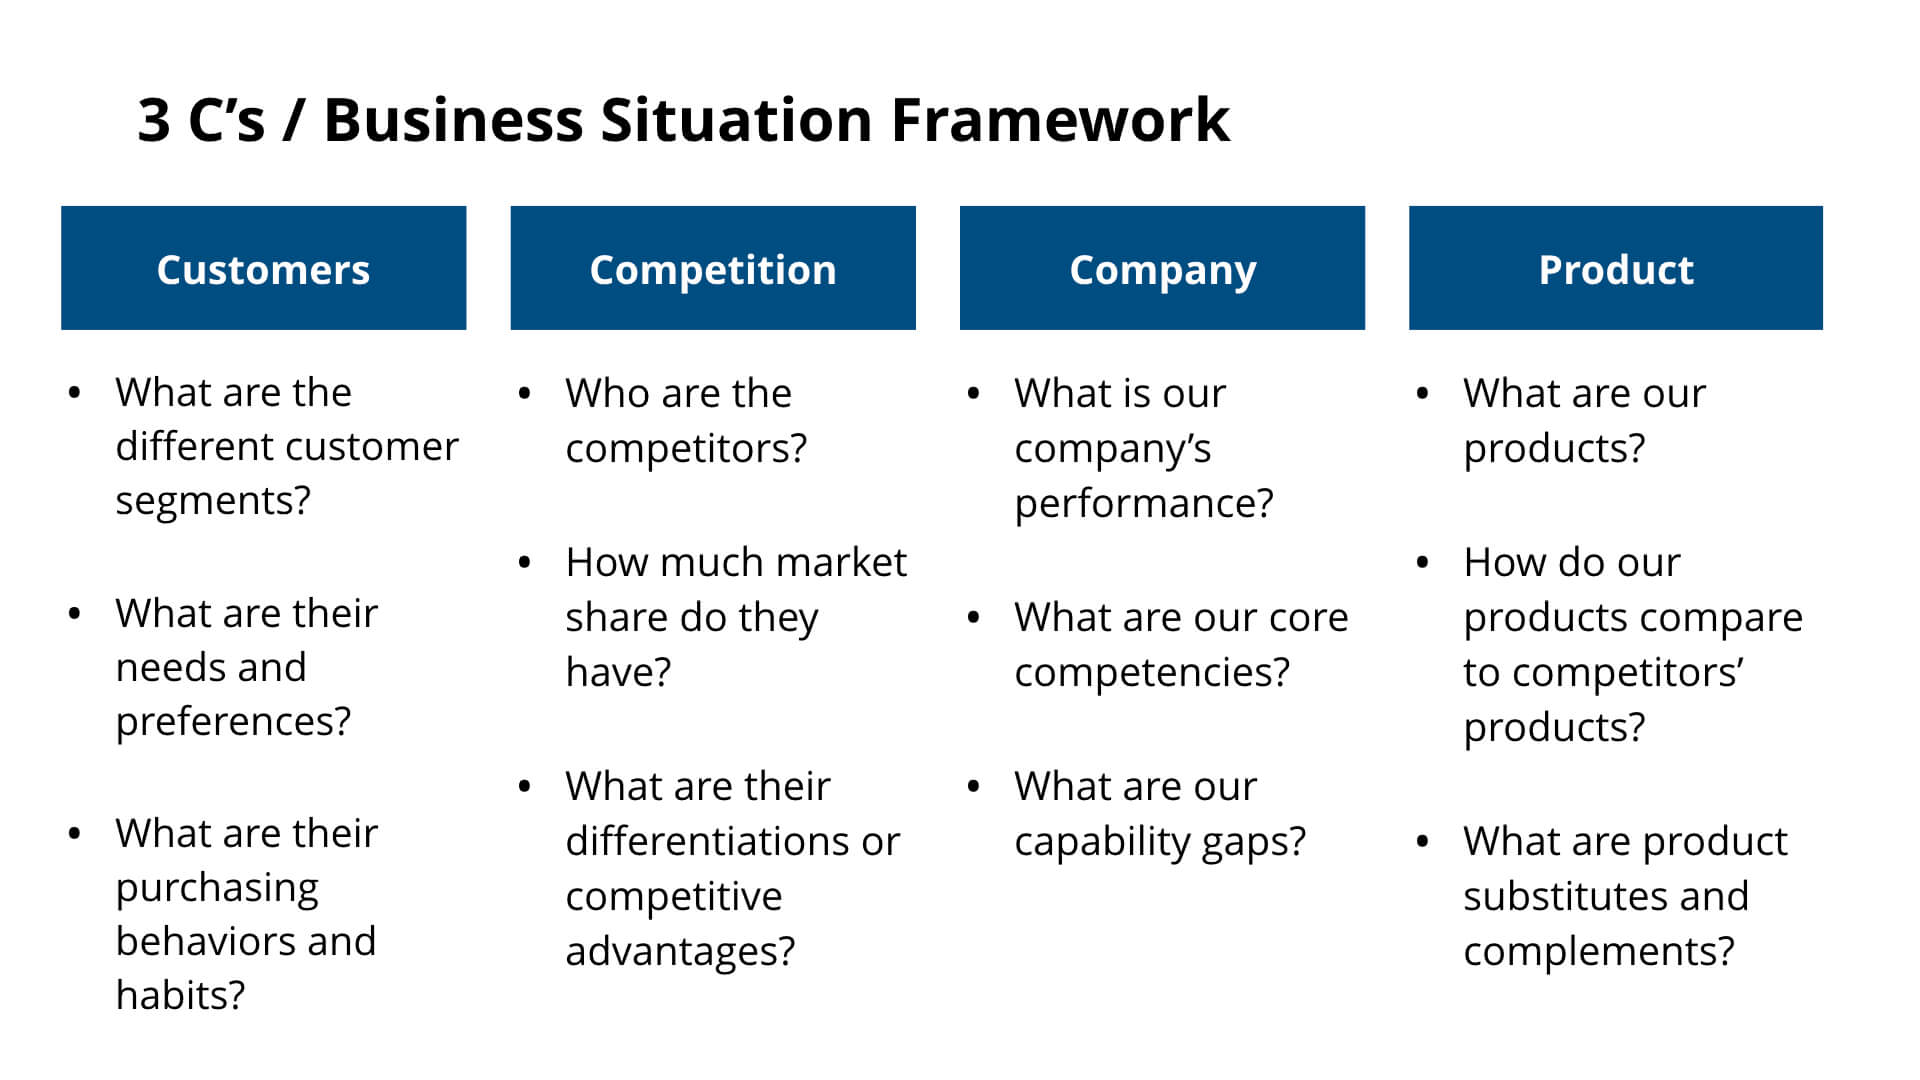 3 C's Business Situation Framework